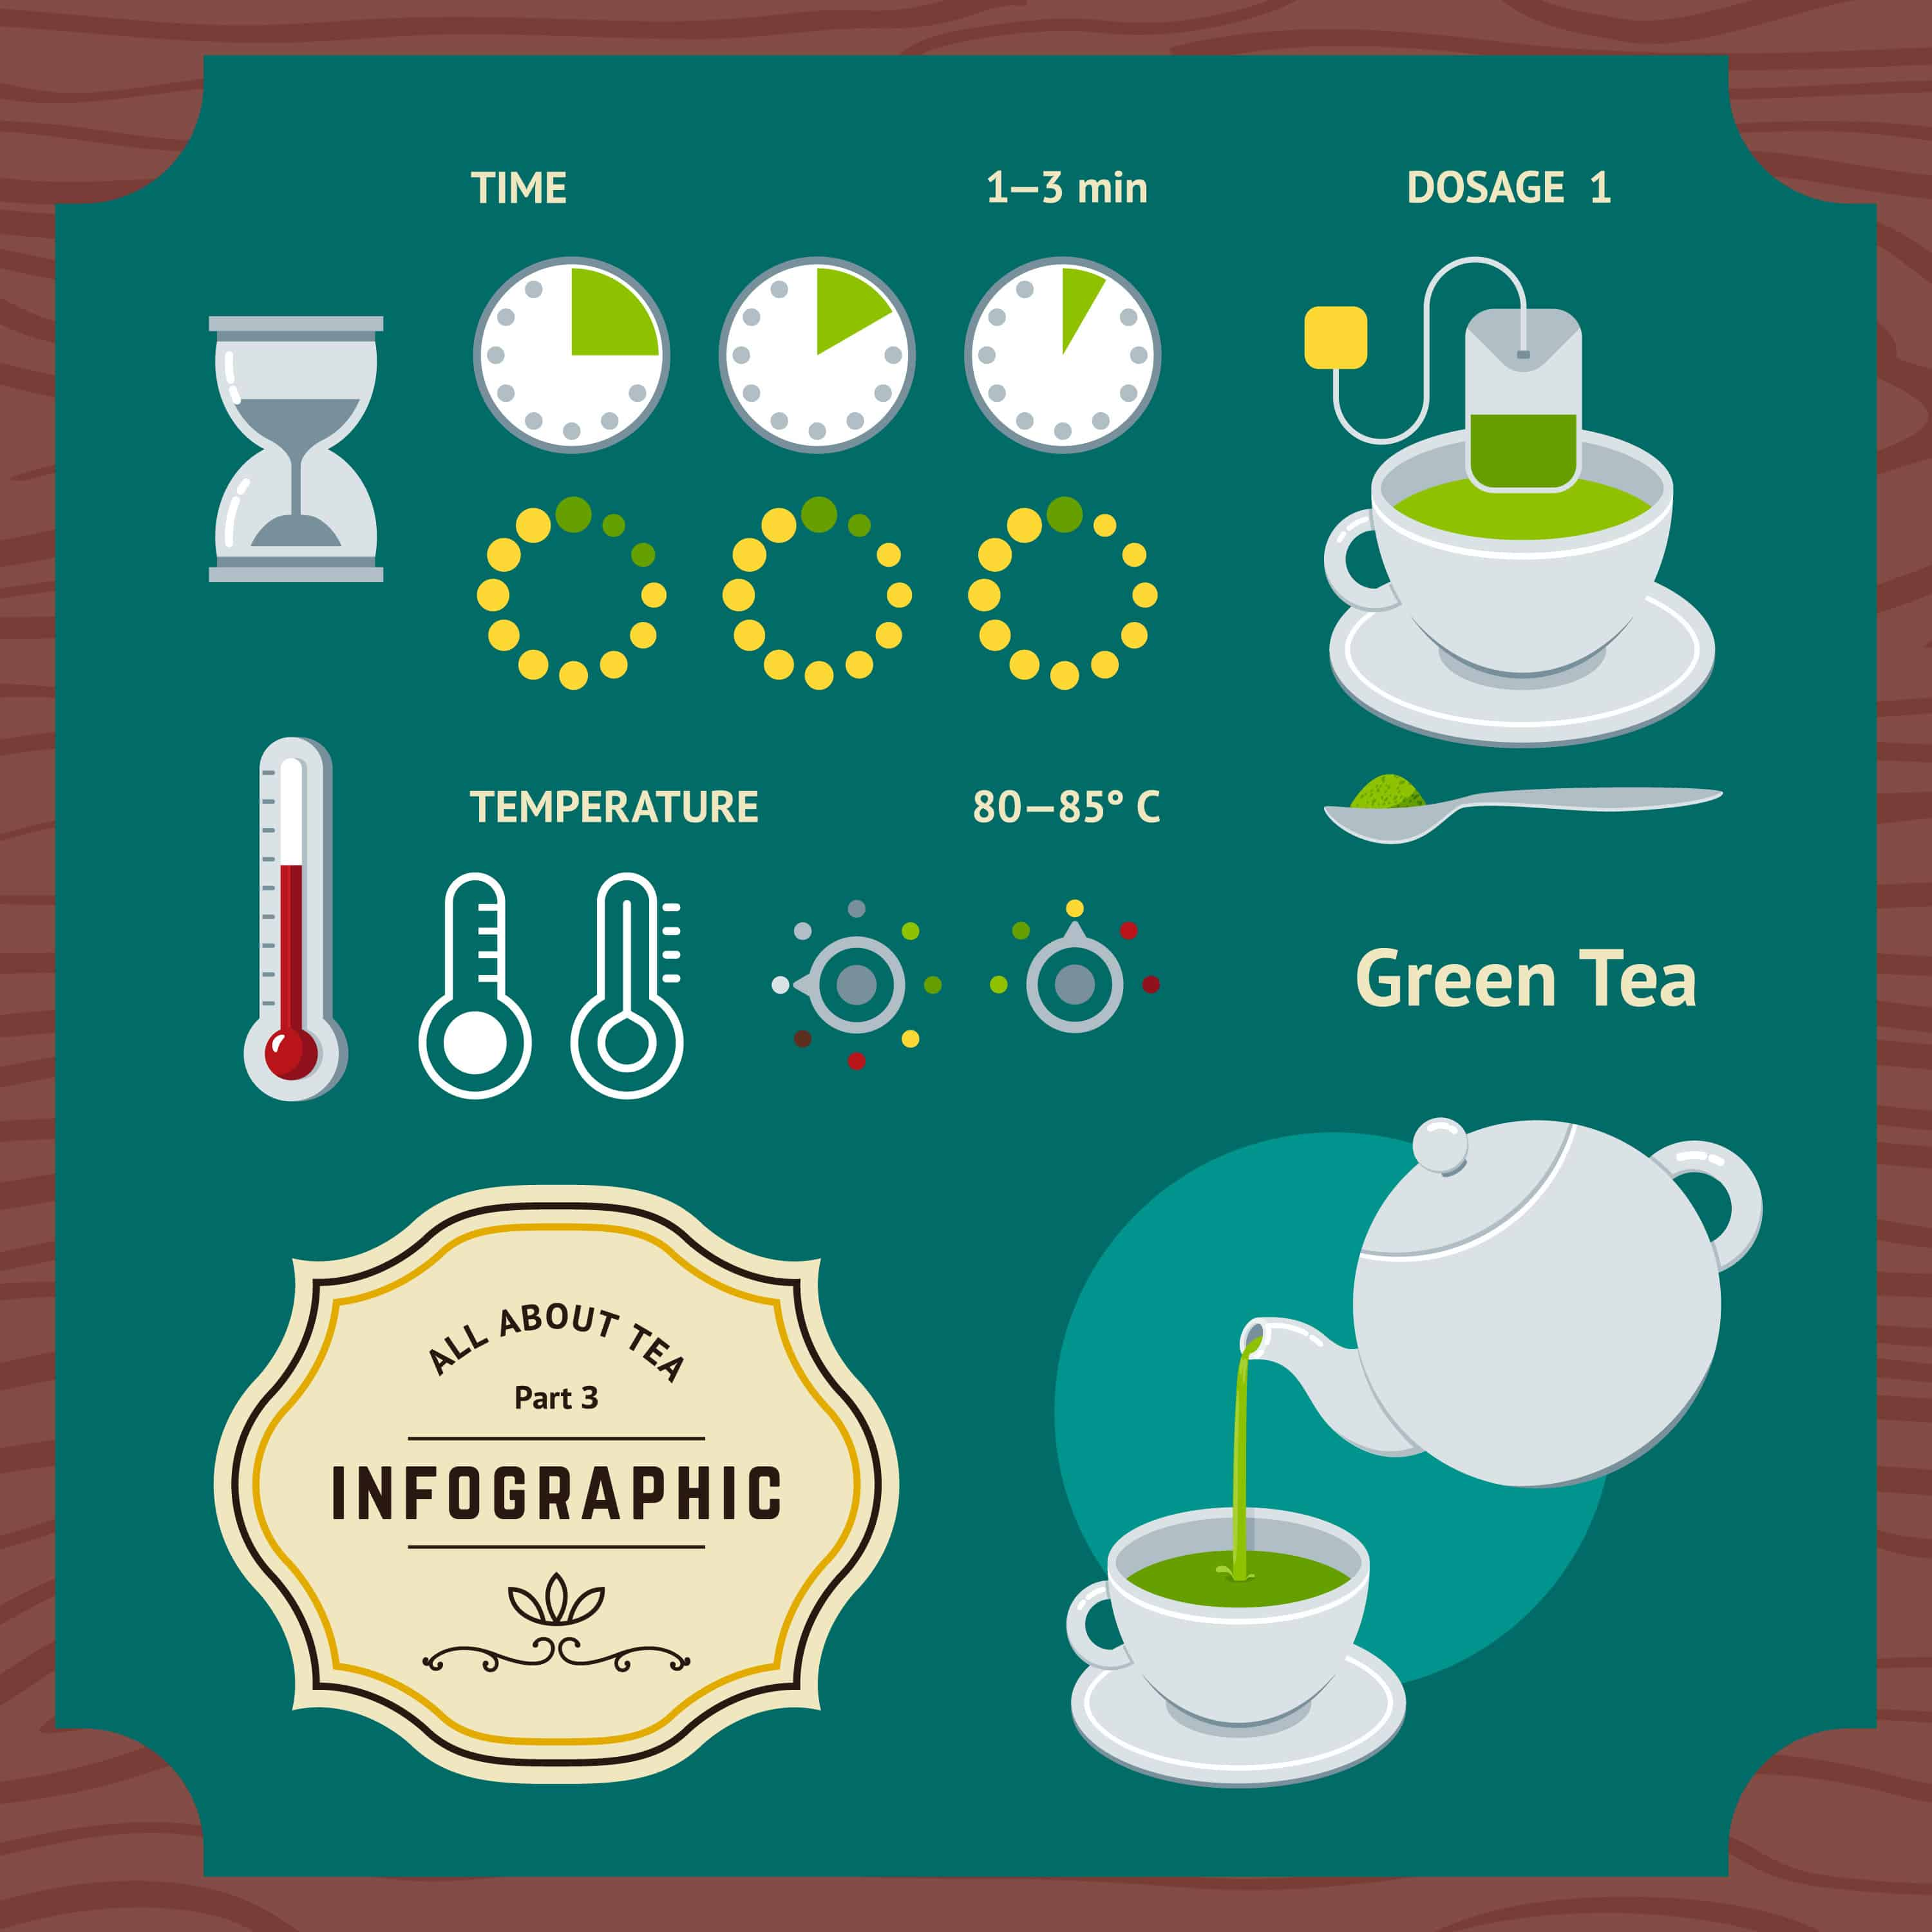 Brewing Green Tea Infographic with Clocks and Thermometers Icons